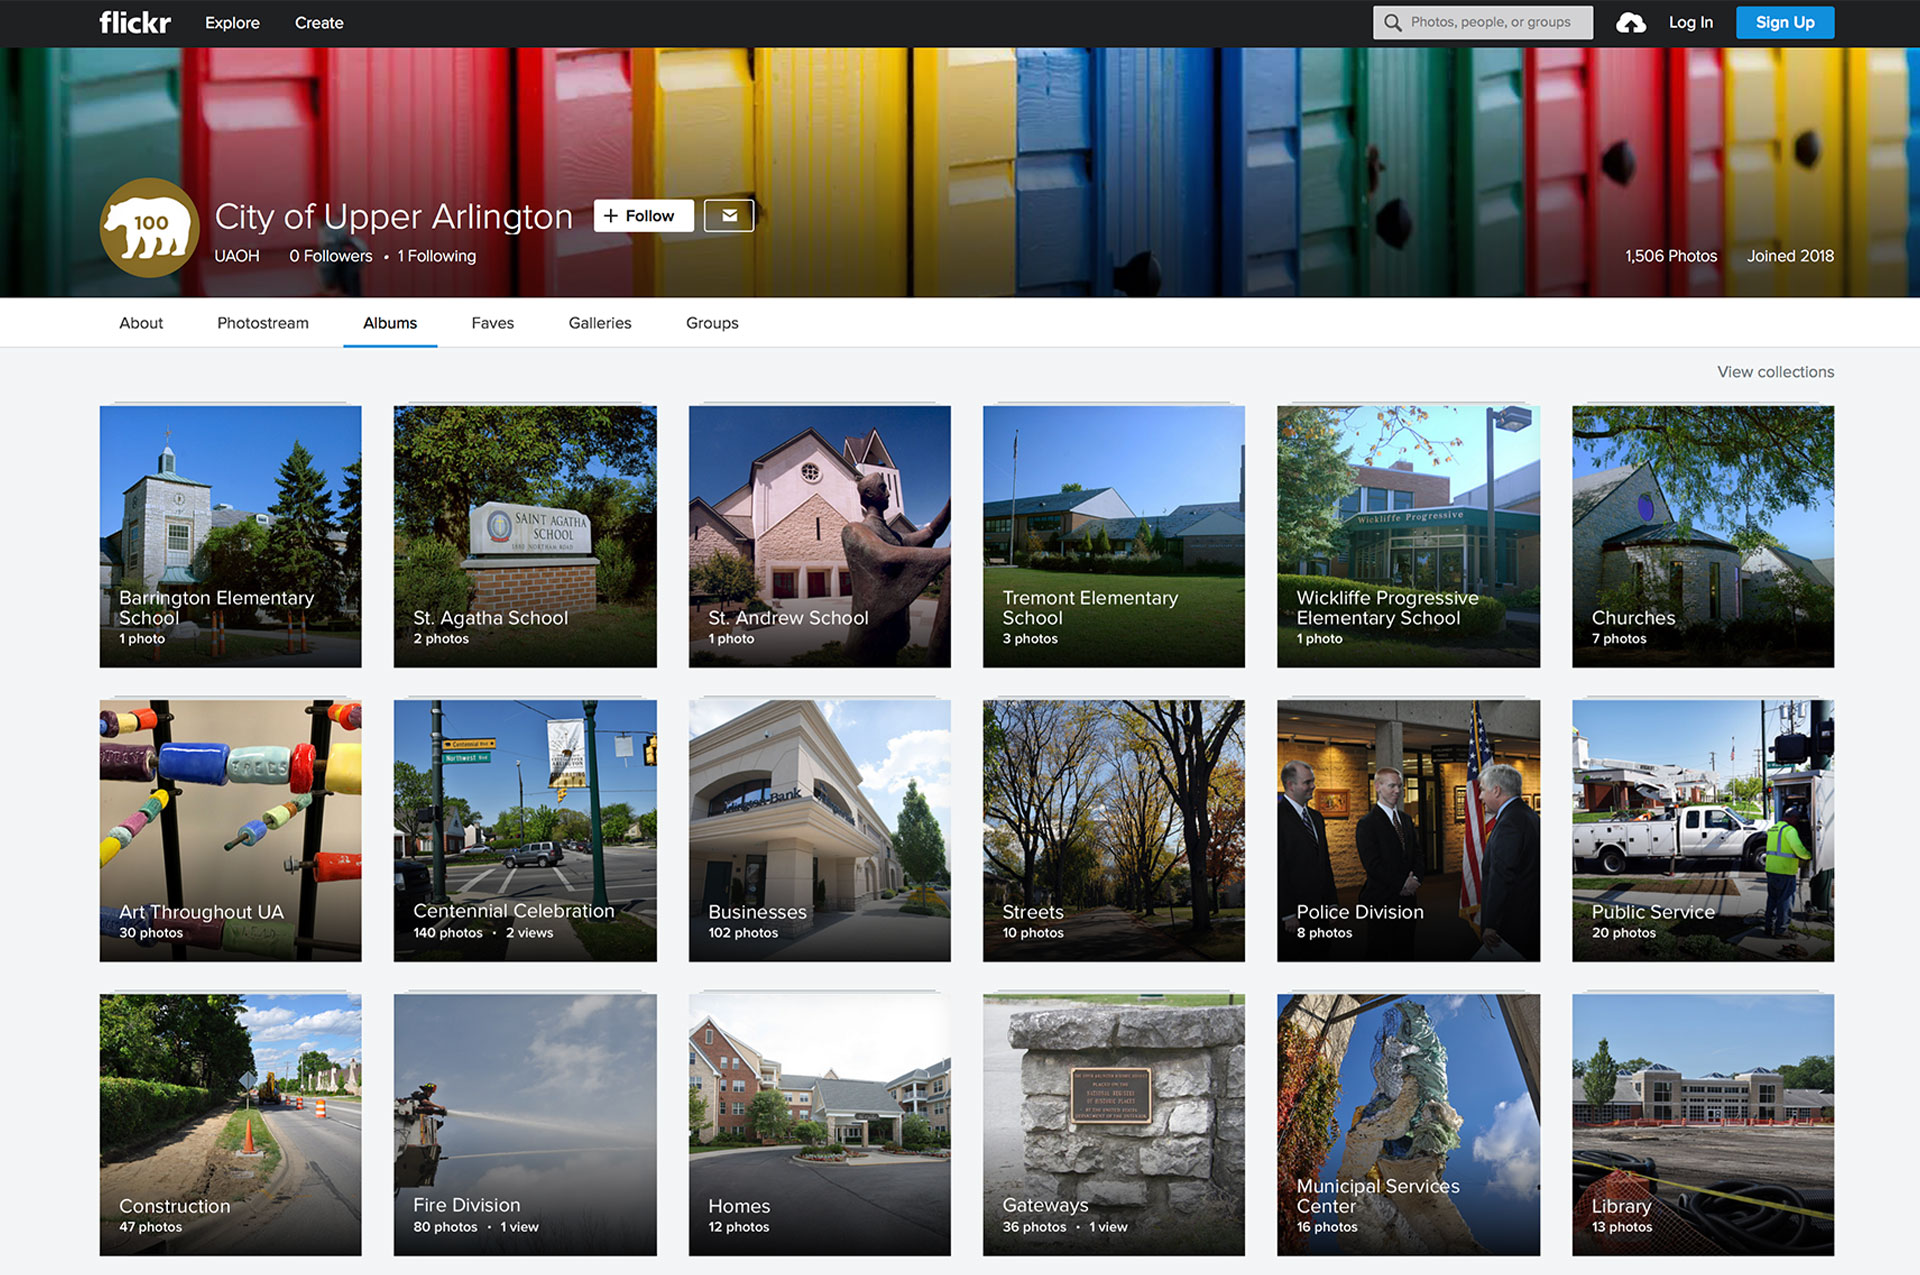 UA Flickr Account To Share Photo Favorites